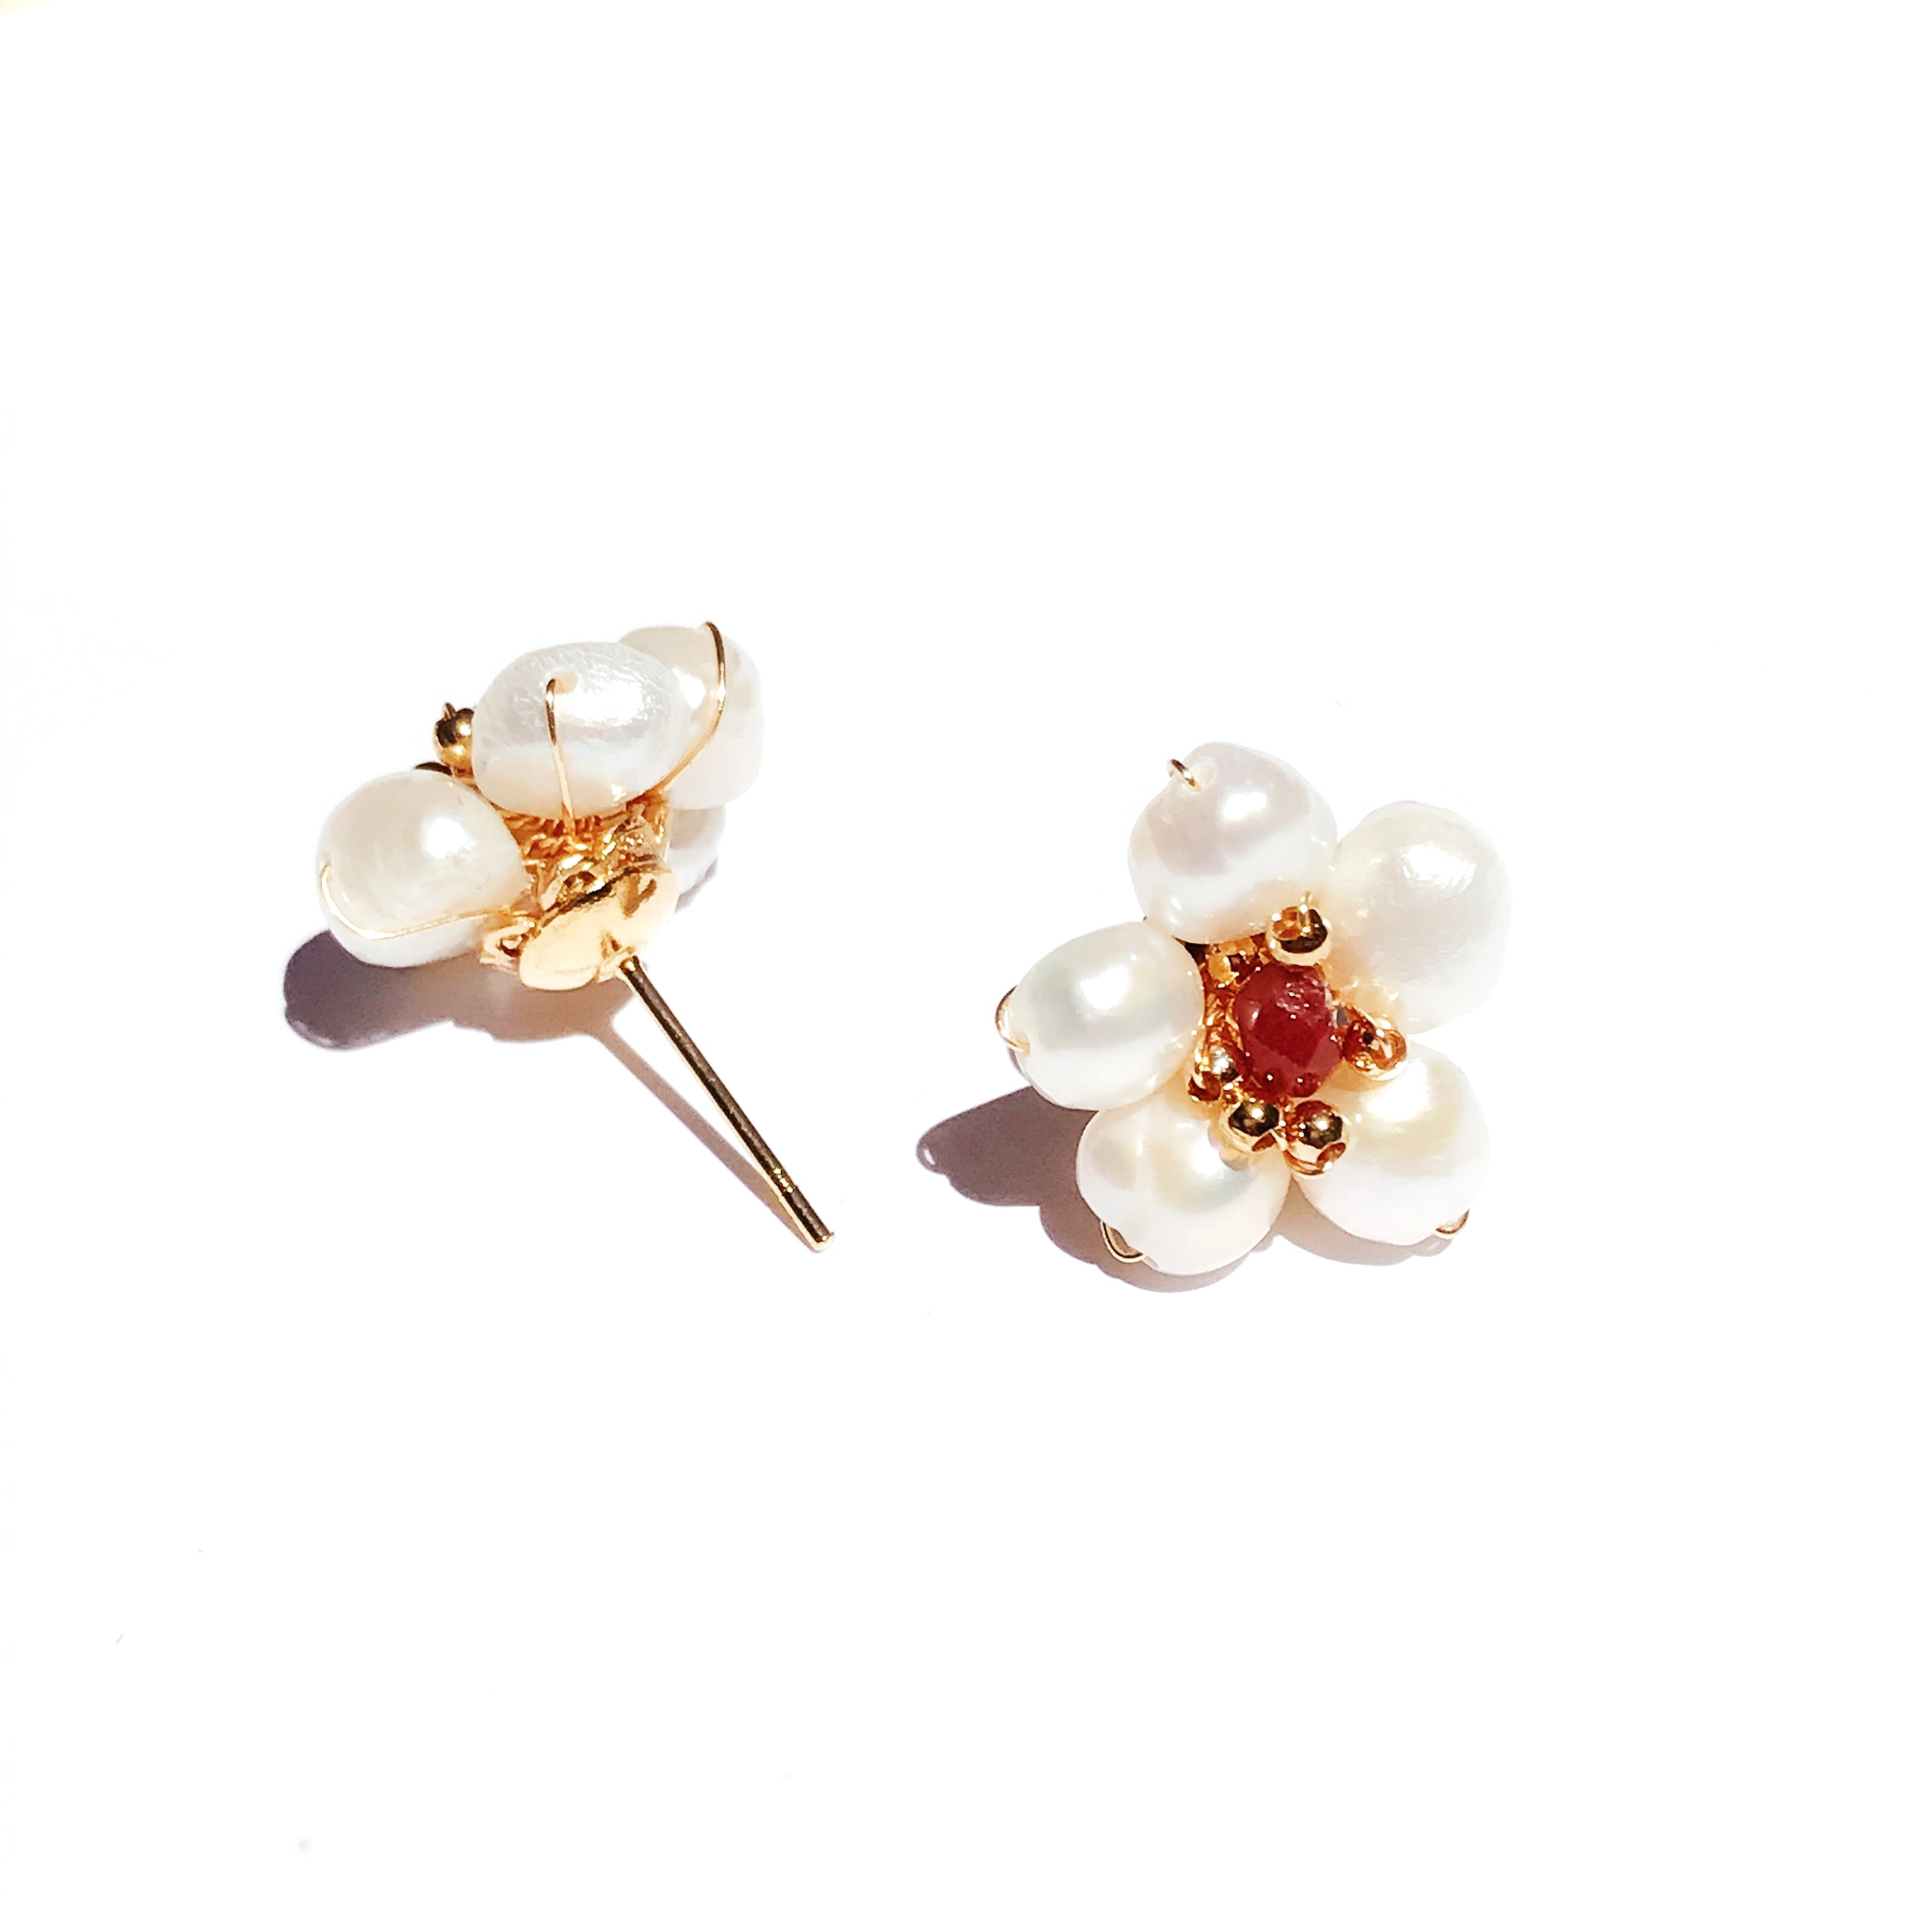 Rosemallow Freshwater Pearl and Red Garnet Stud Earrings